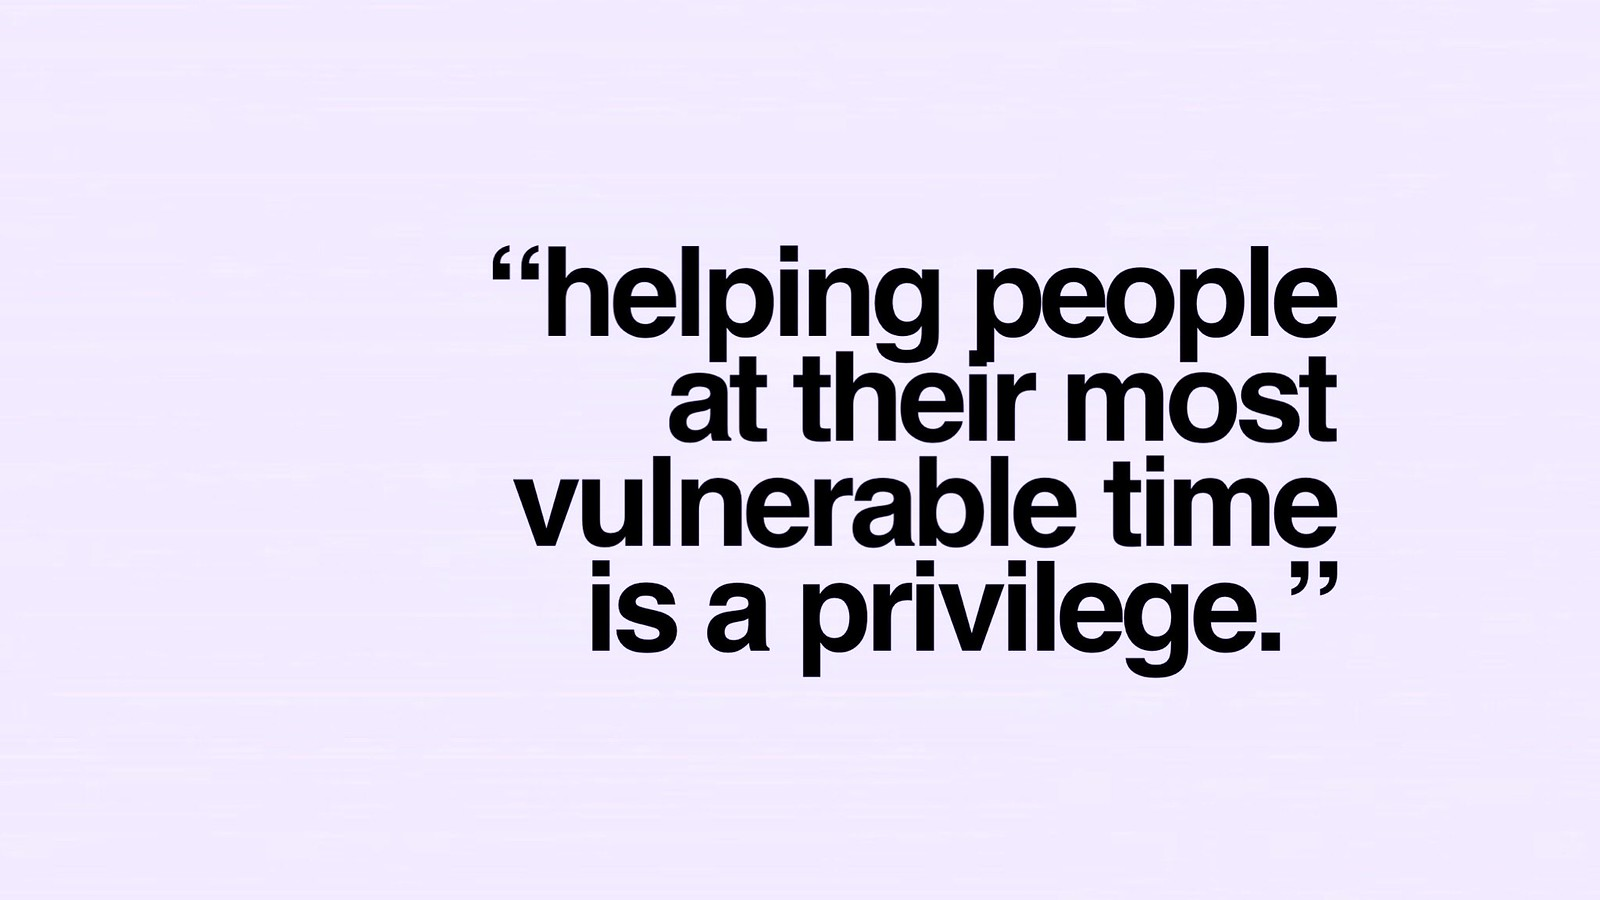 Helping people at their most vulnerable time is a privilege.